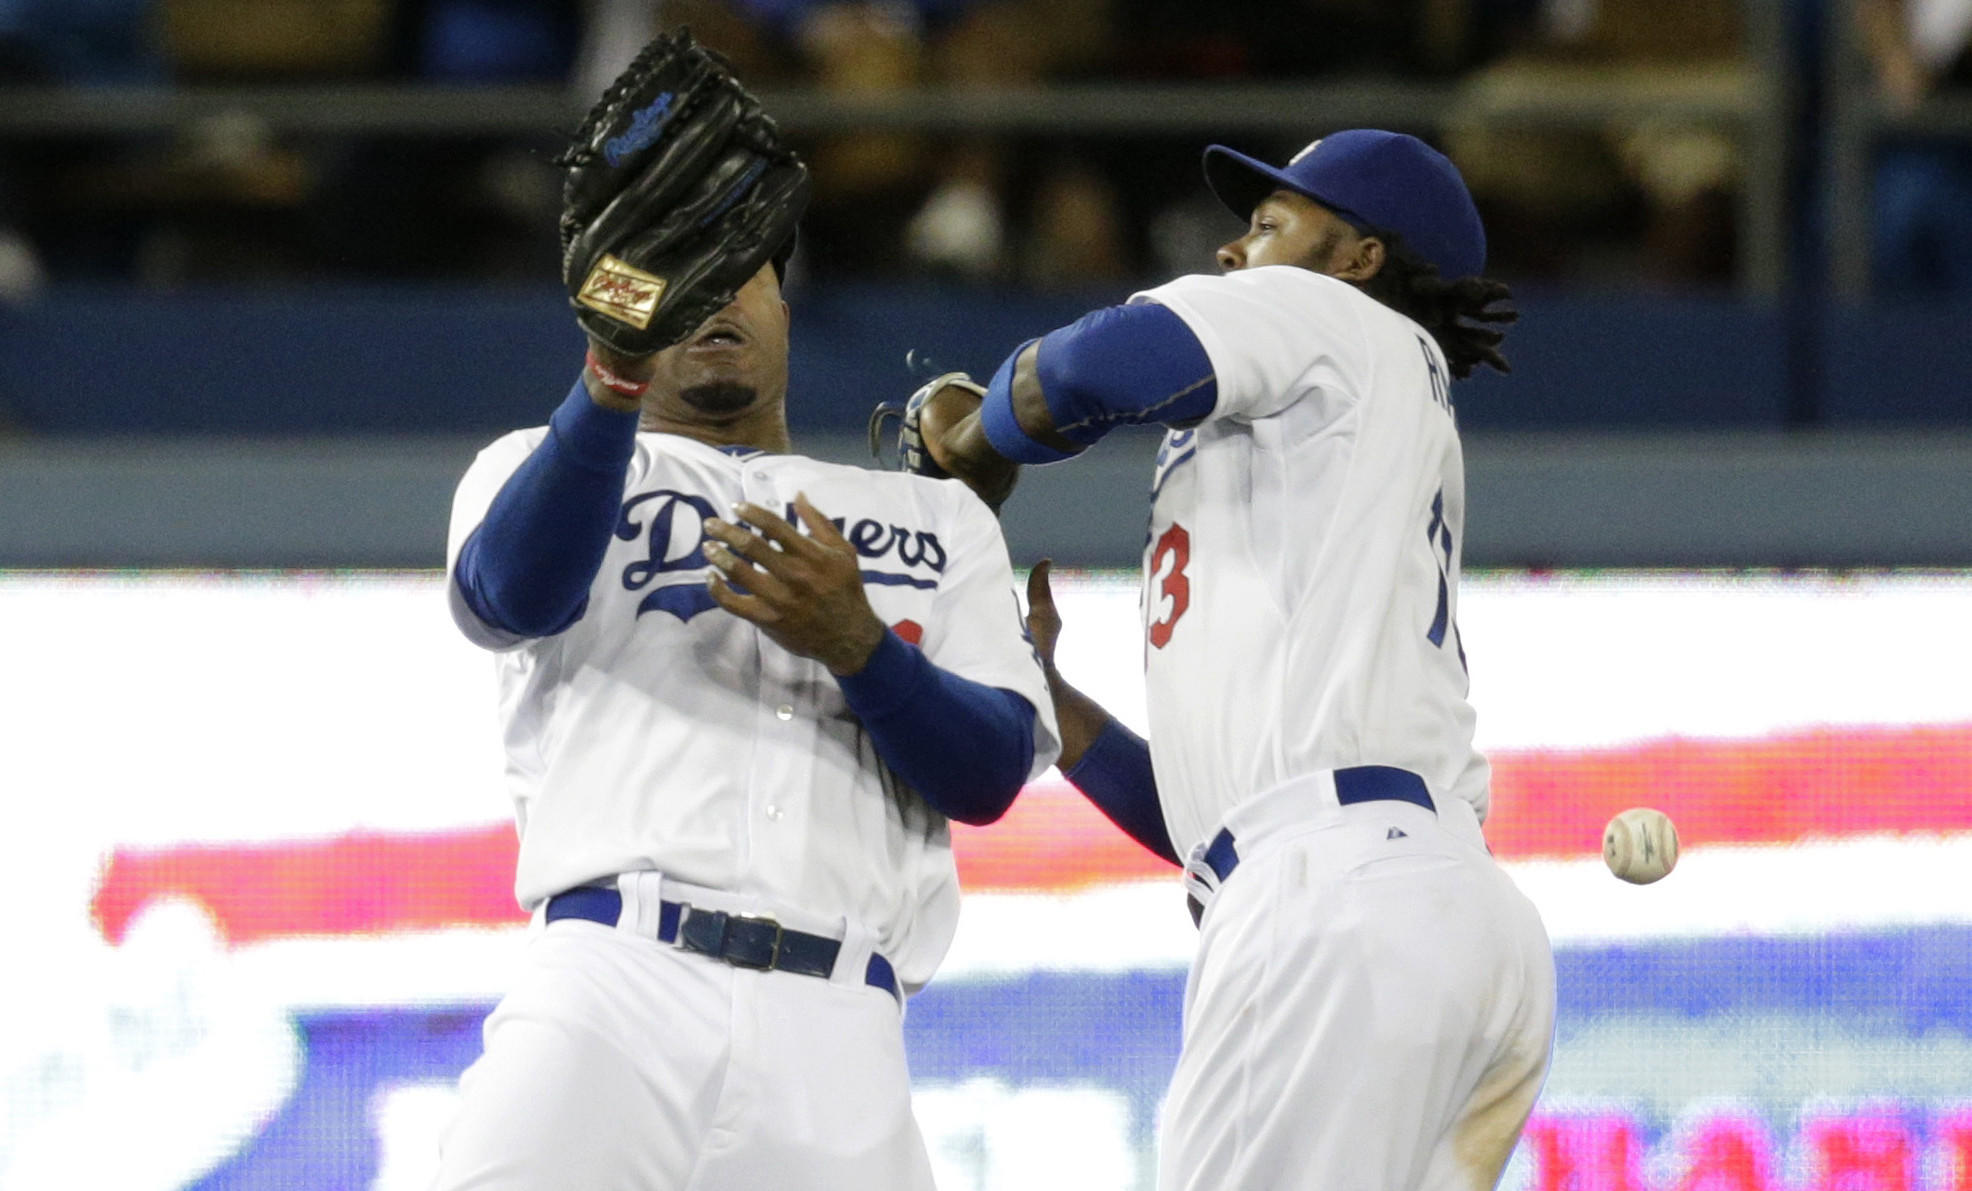 Dodgers teammates Hanley Ramirez, left, and Carl Crawford can't make a catch on a ball hit by Philadelphia's Carlos Ruiz during the 10th inning of the Dodgers' 3-2 loss in 10 innings Tuesday.